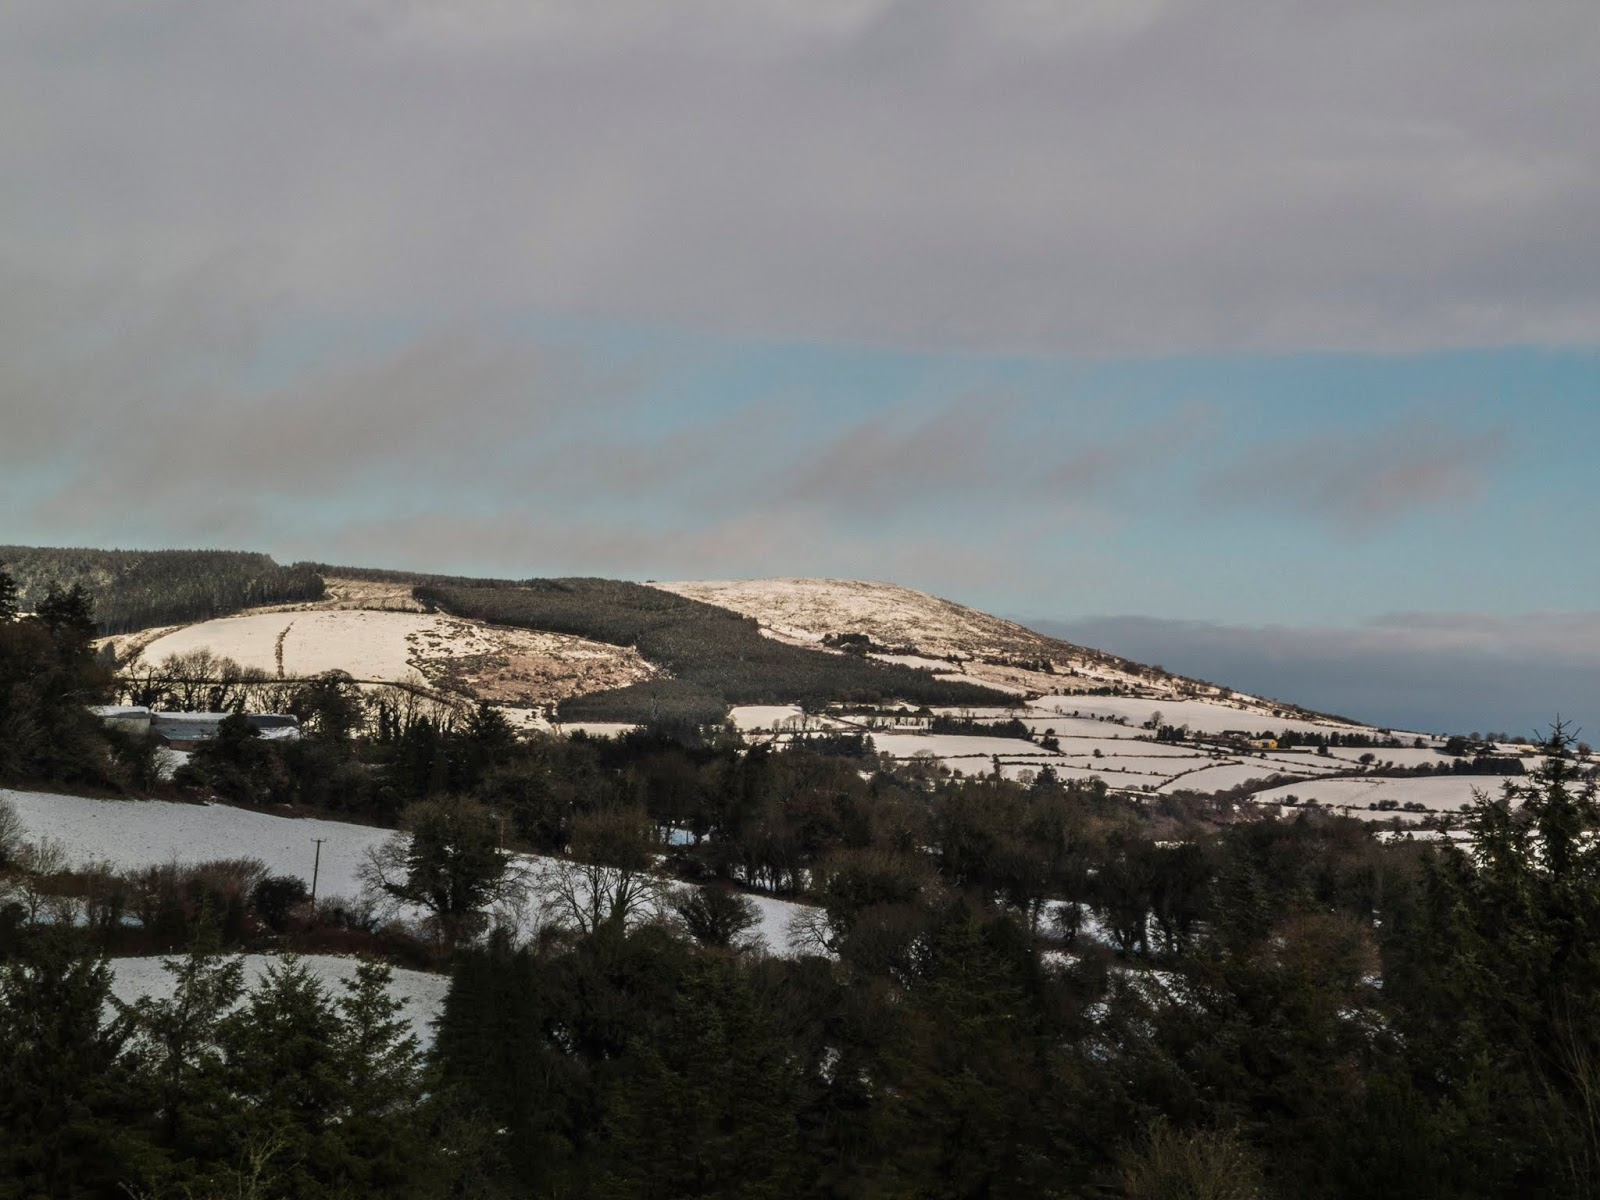 Sun shining on a snow covered mountain in North County Cork.